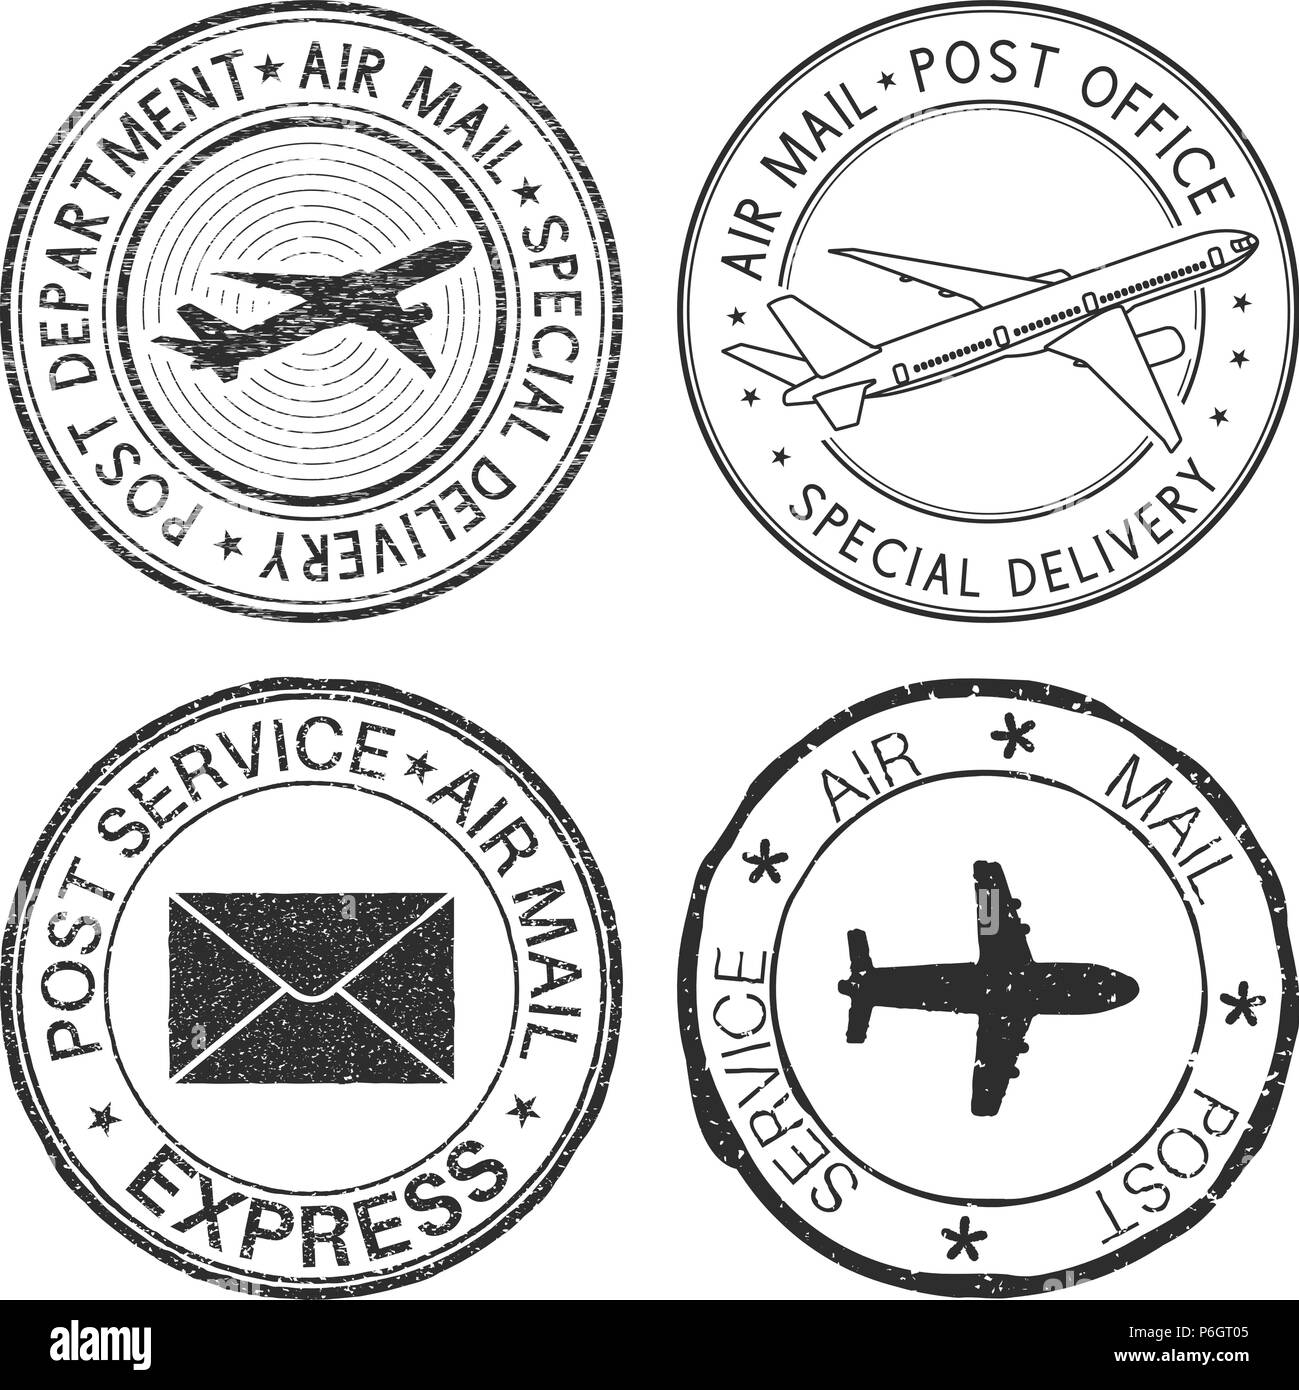 Postmarks with airplane and envelope symbols. Black ink postal stamps - Stock Image